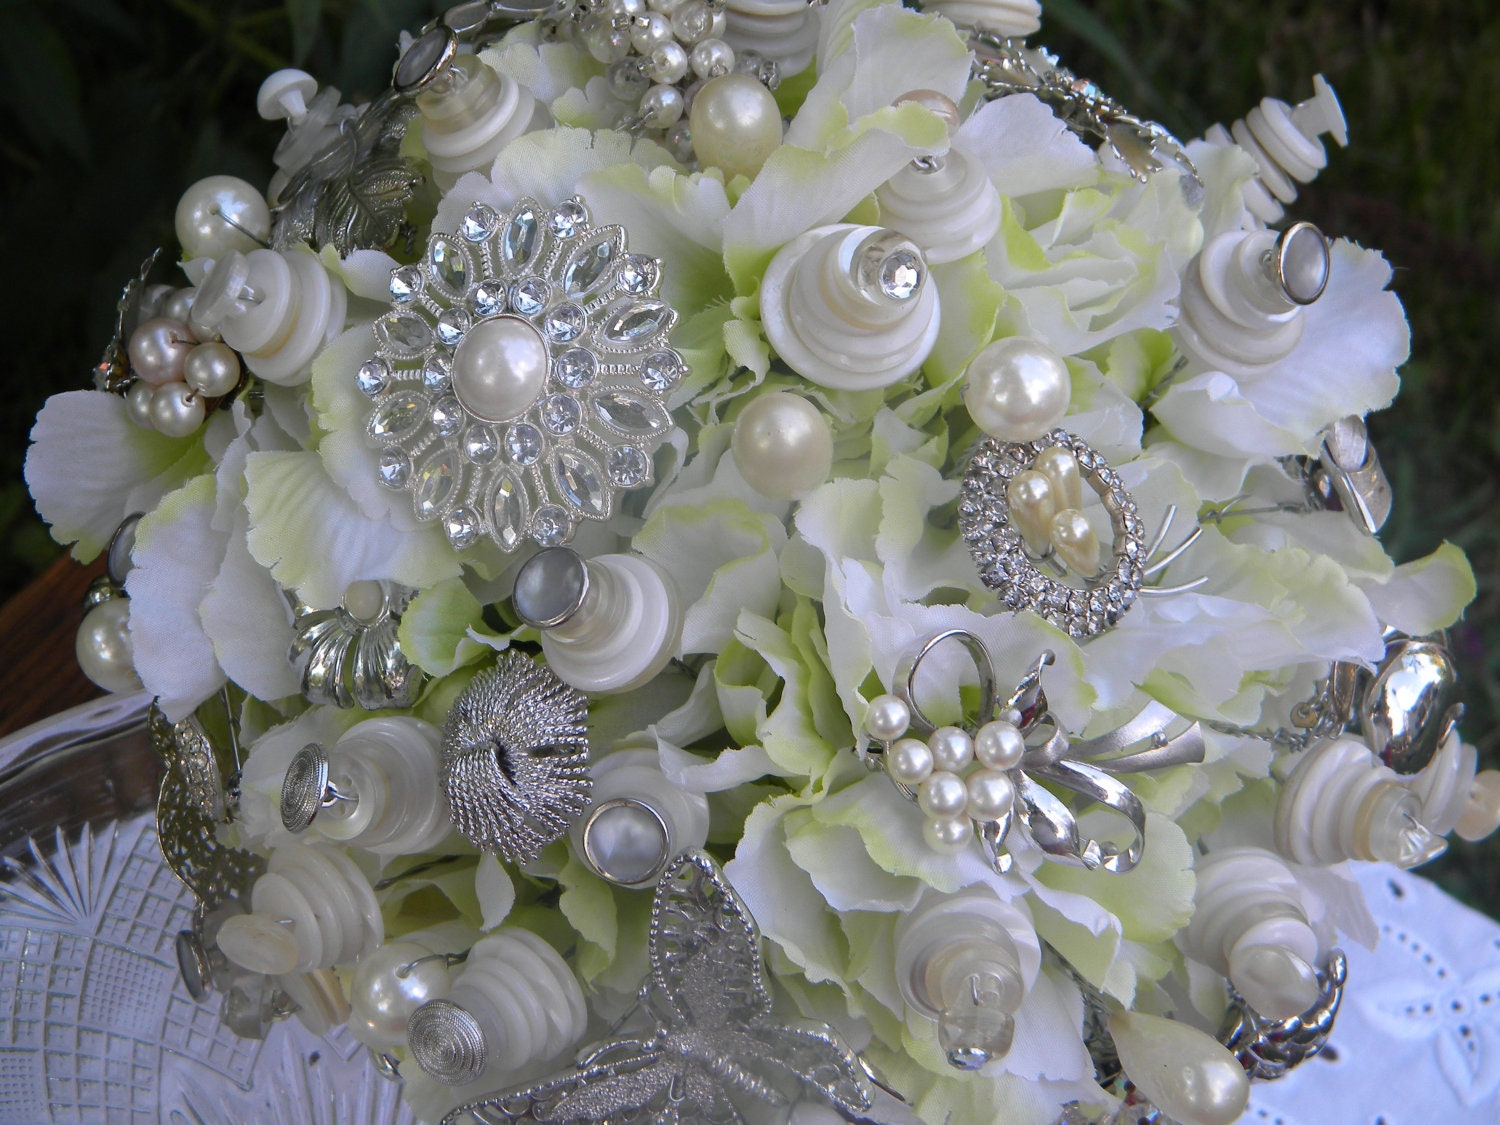 Bridal Flowers With Bling : Bling wedding bouquet by josiegirlbouquets on etsy